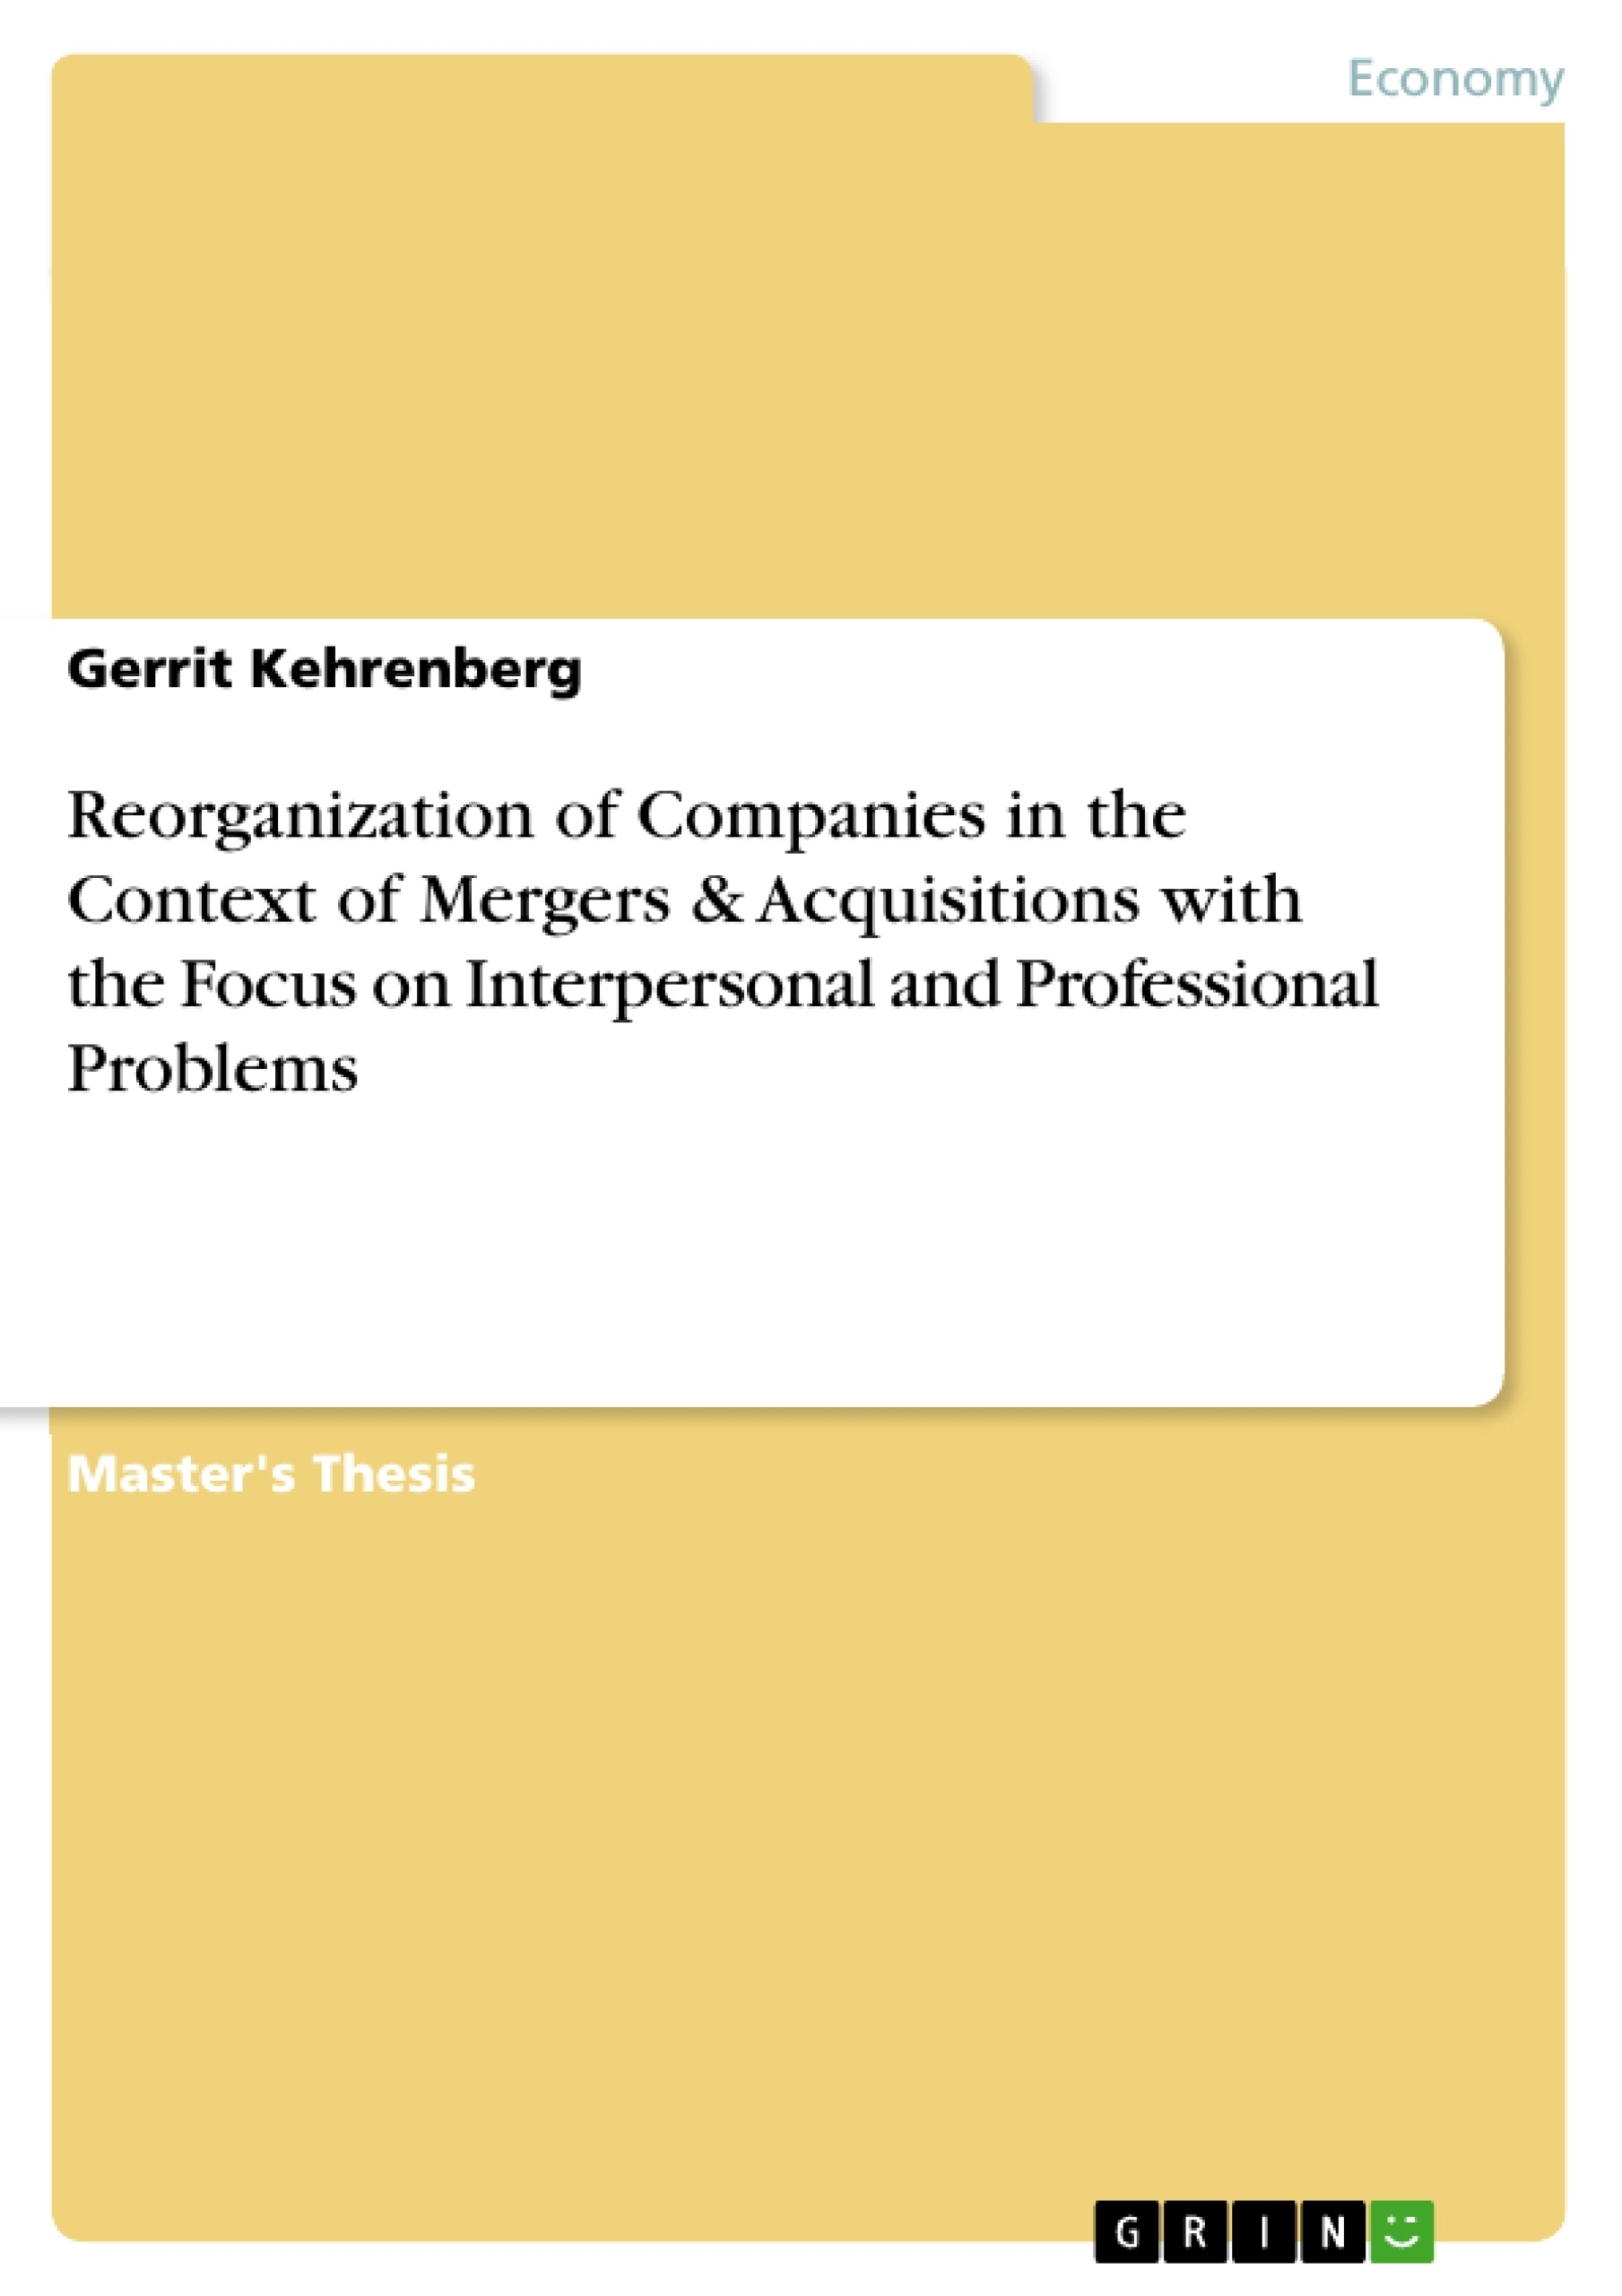 Title: Reorganization of Companies in the Context of Mergers & Acquisitions with the Focus on Interpersonal and Professional Problems